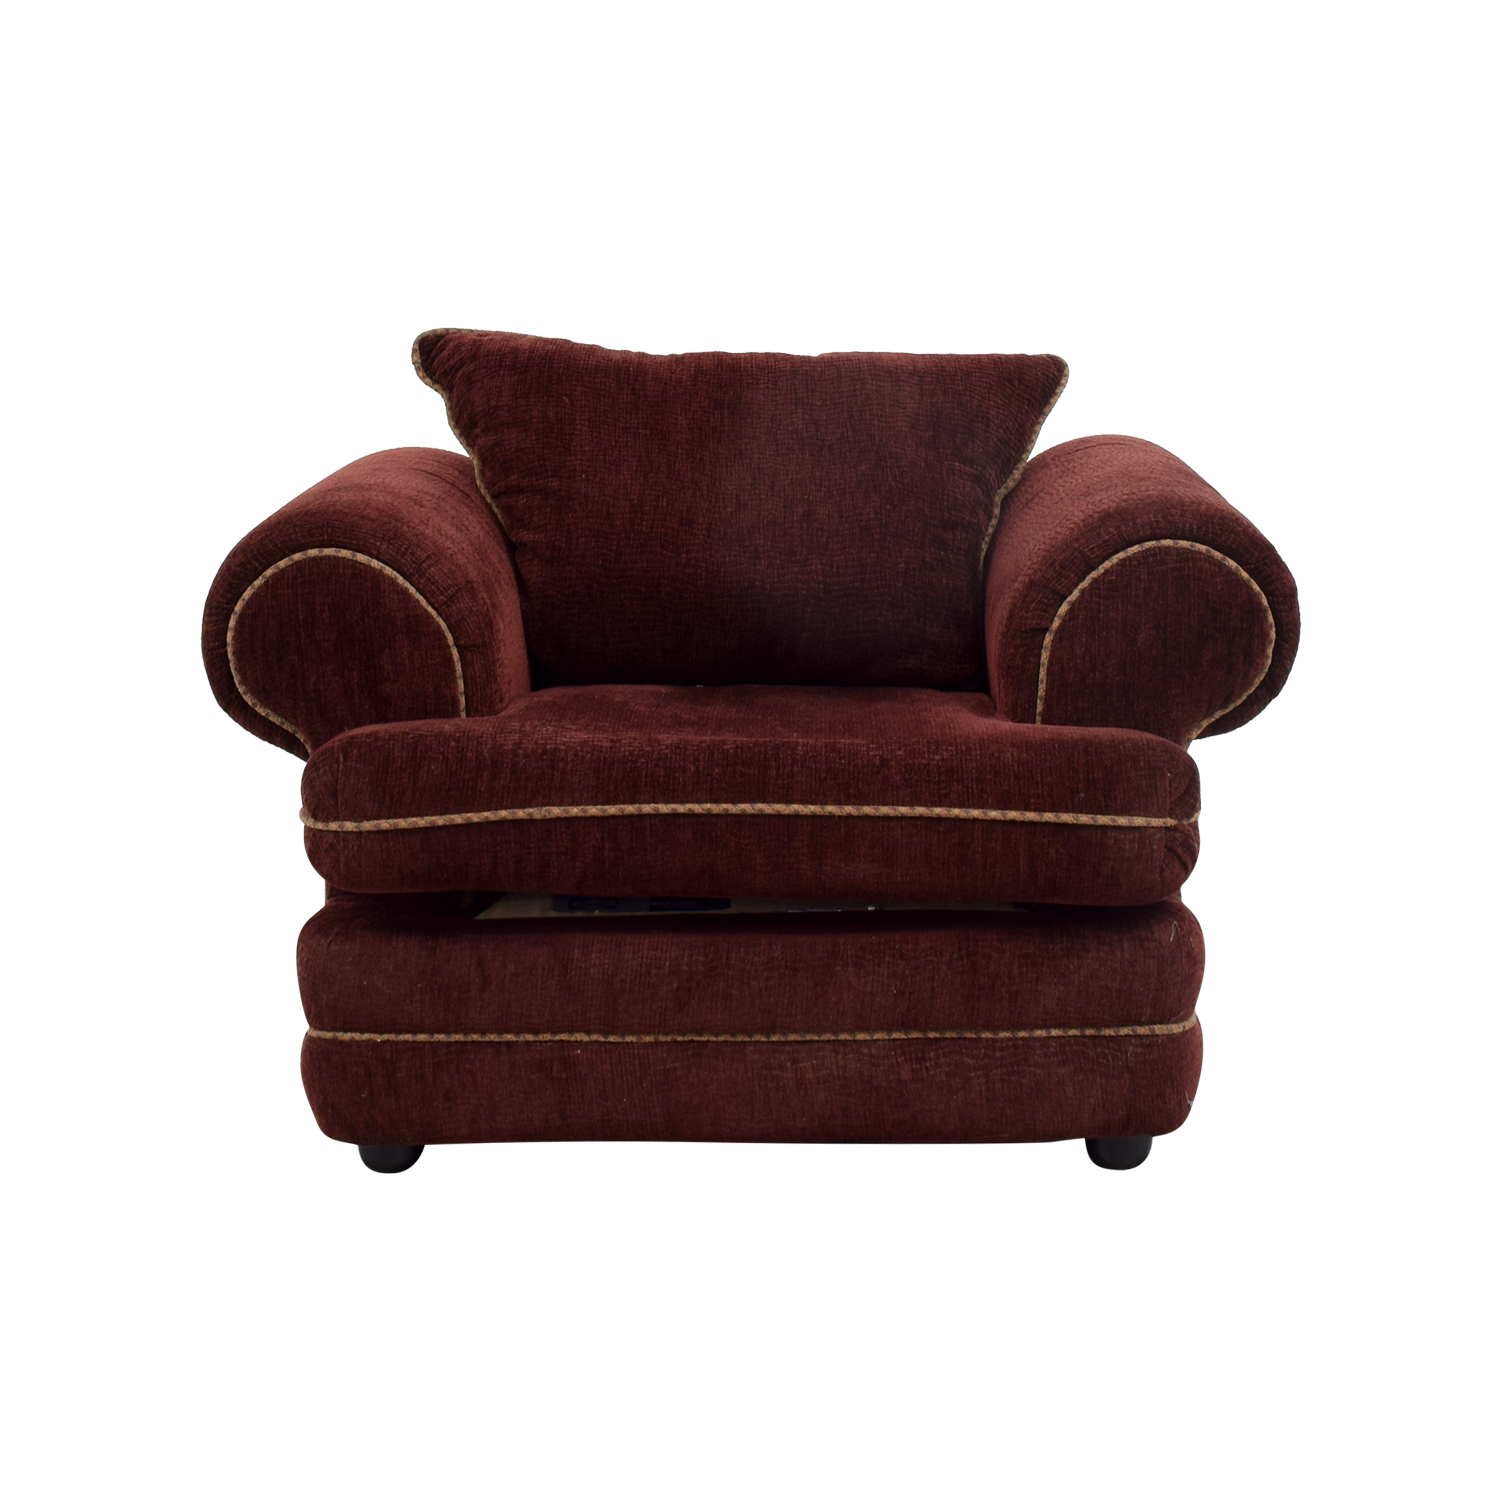 Good Sealy Sealy Burgundy Accent Chair Coupon ...